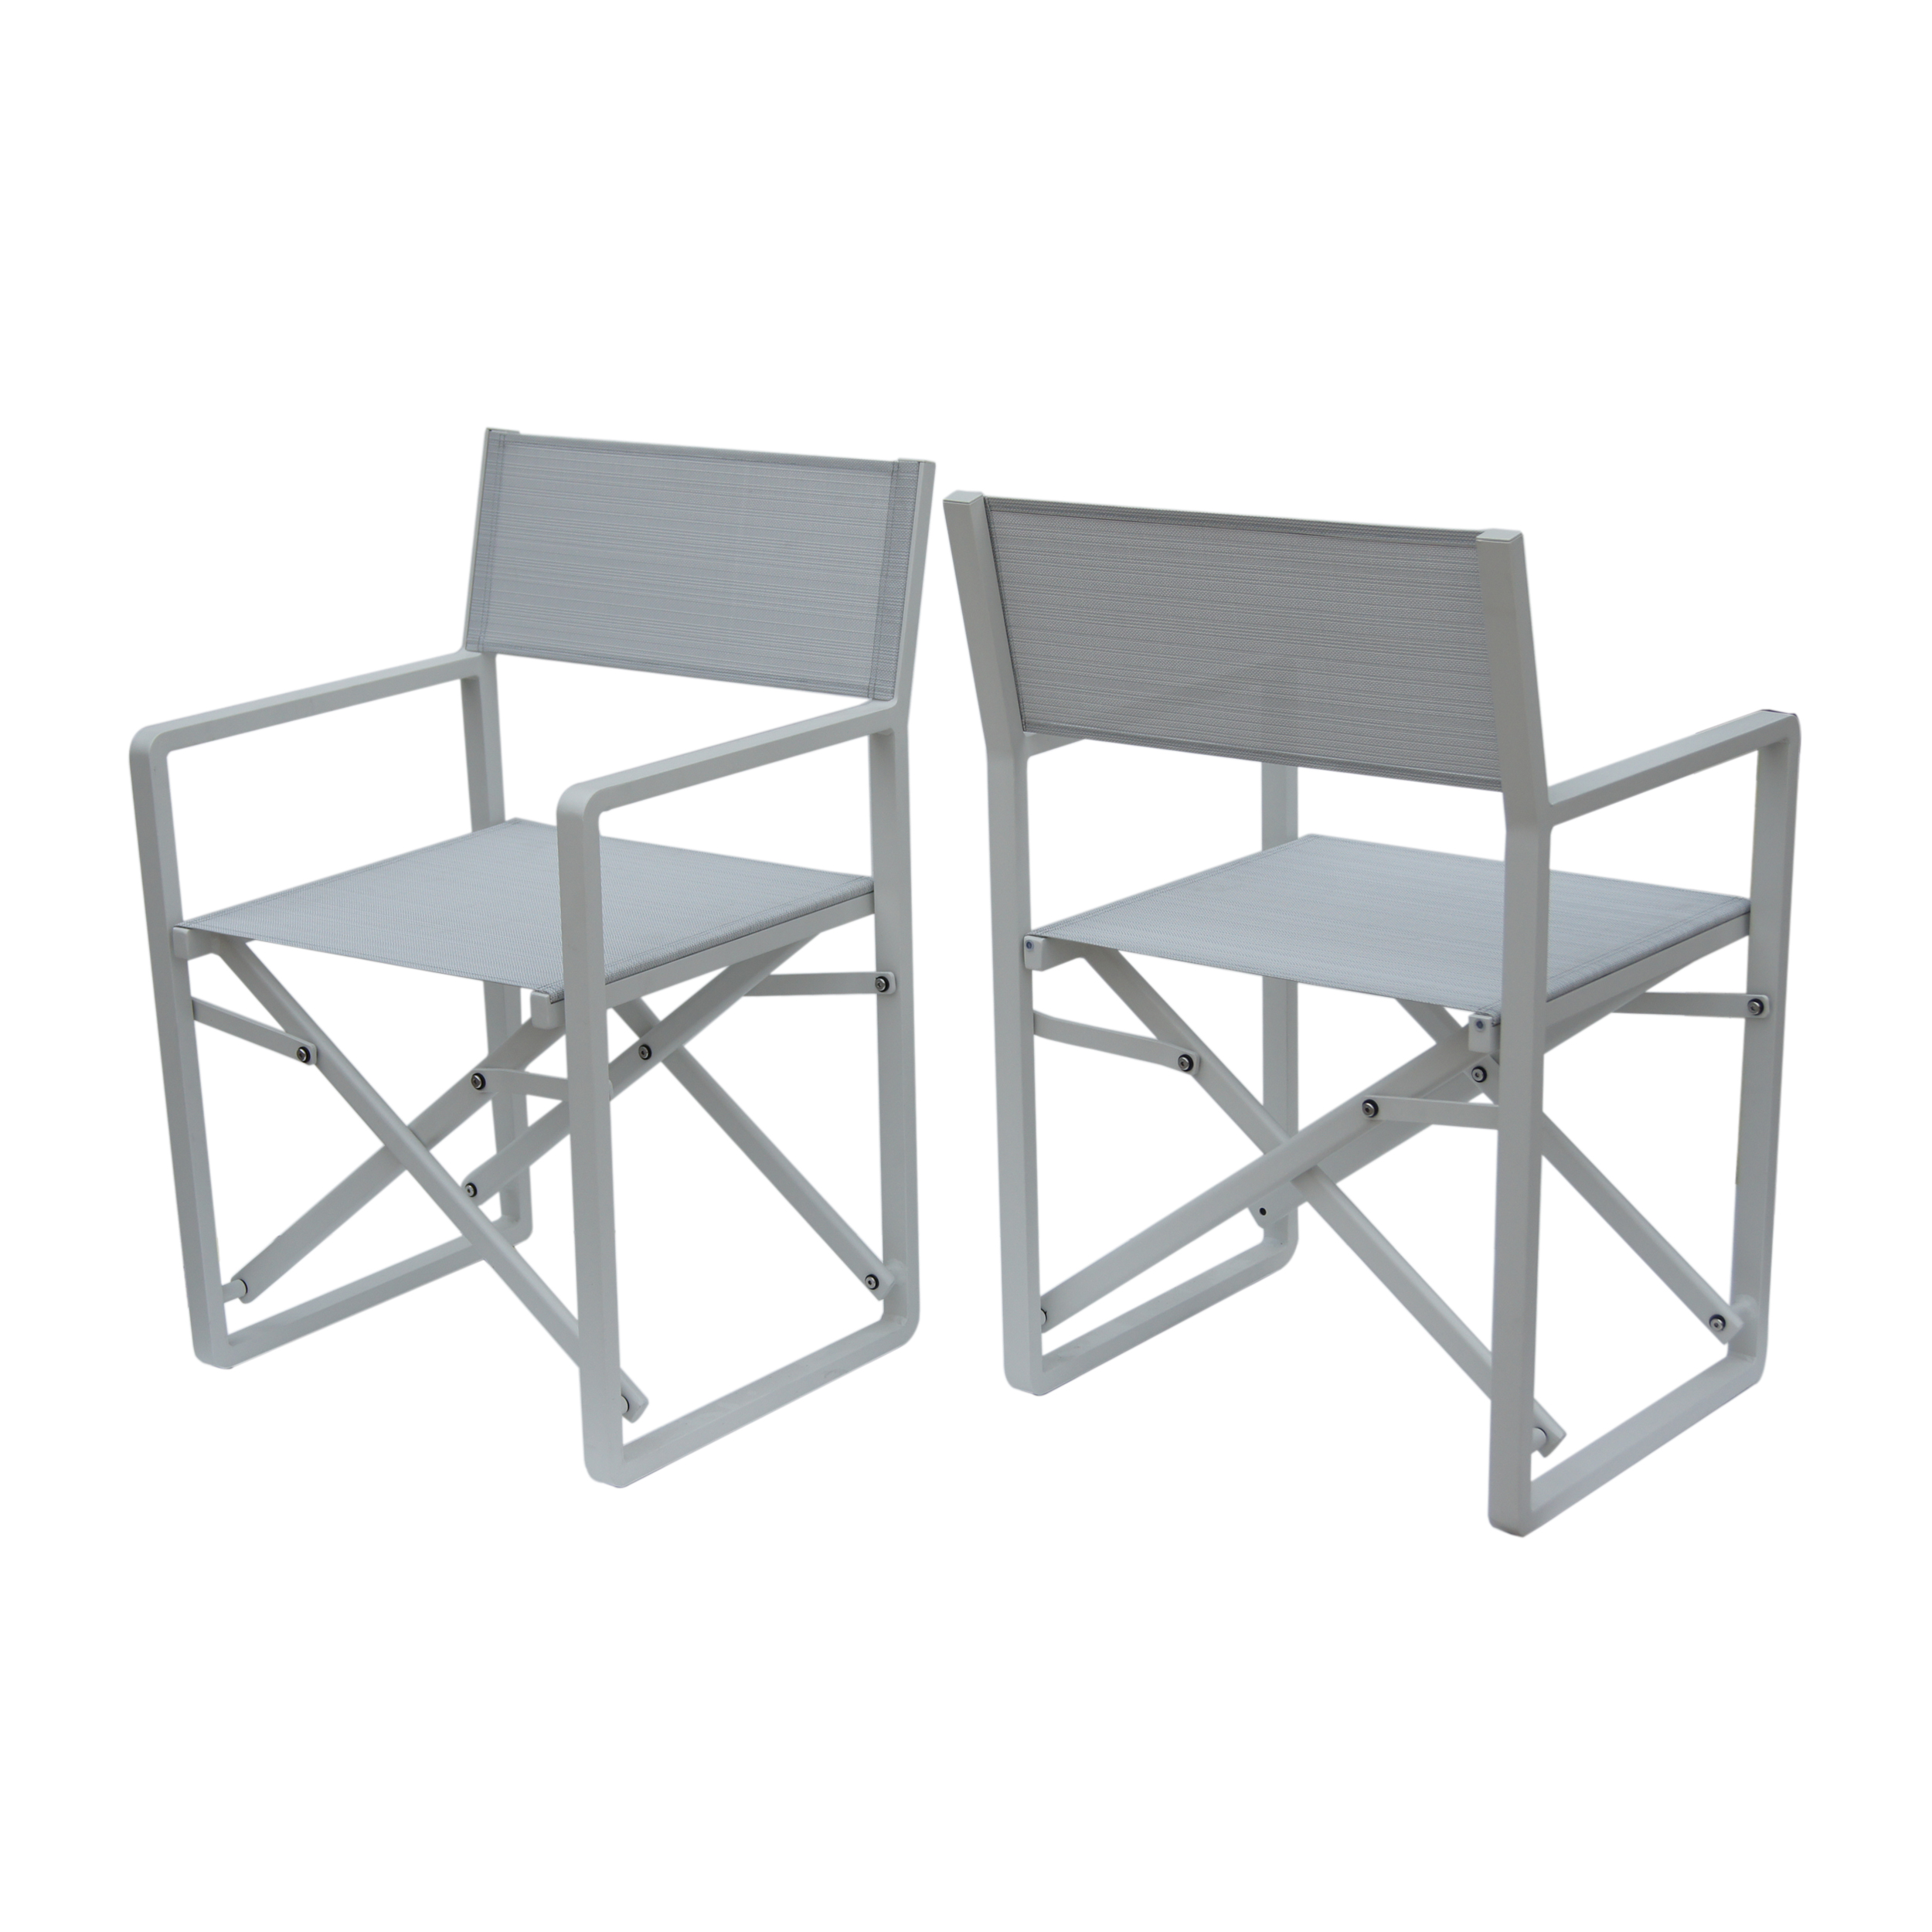 Teresa Vista Outdoor Mesh and Aluminum Director Chairs, Set of 2, White